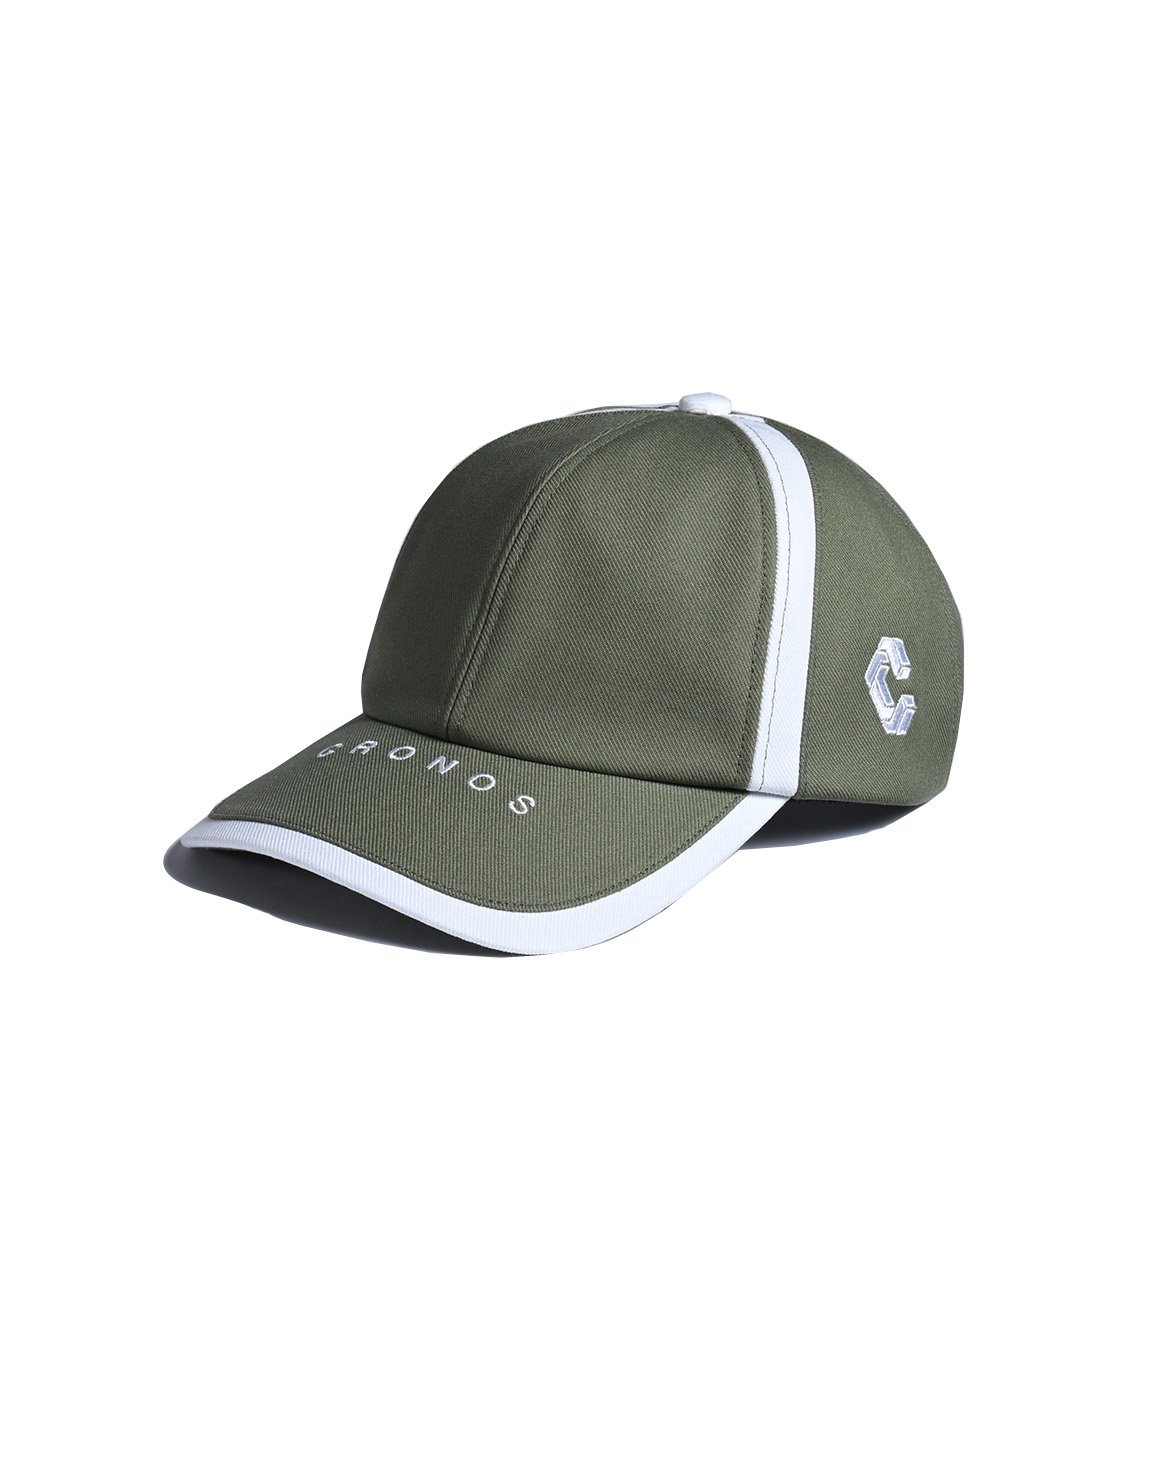 <img class='new_mark_img1' src='https://img.shop-pro.jp/img/new/icons1.gif' style='border:none;display:inline;margin:0px;padding:0px;width:auto;' />CRONOS LINE TAPE CAP 【OLIVE&KHAKI】